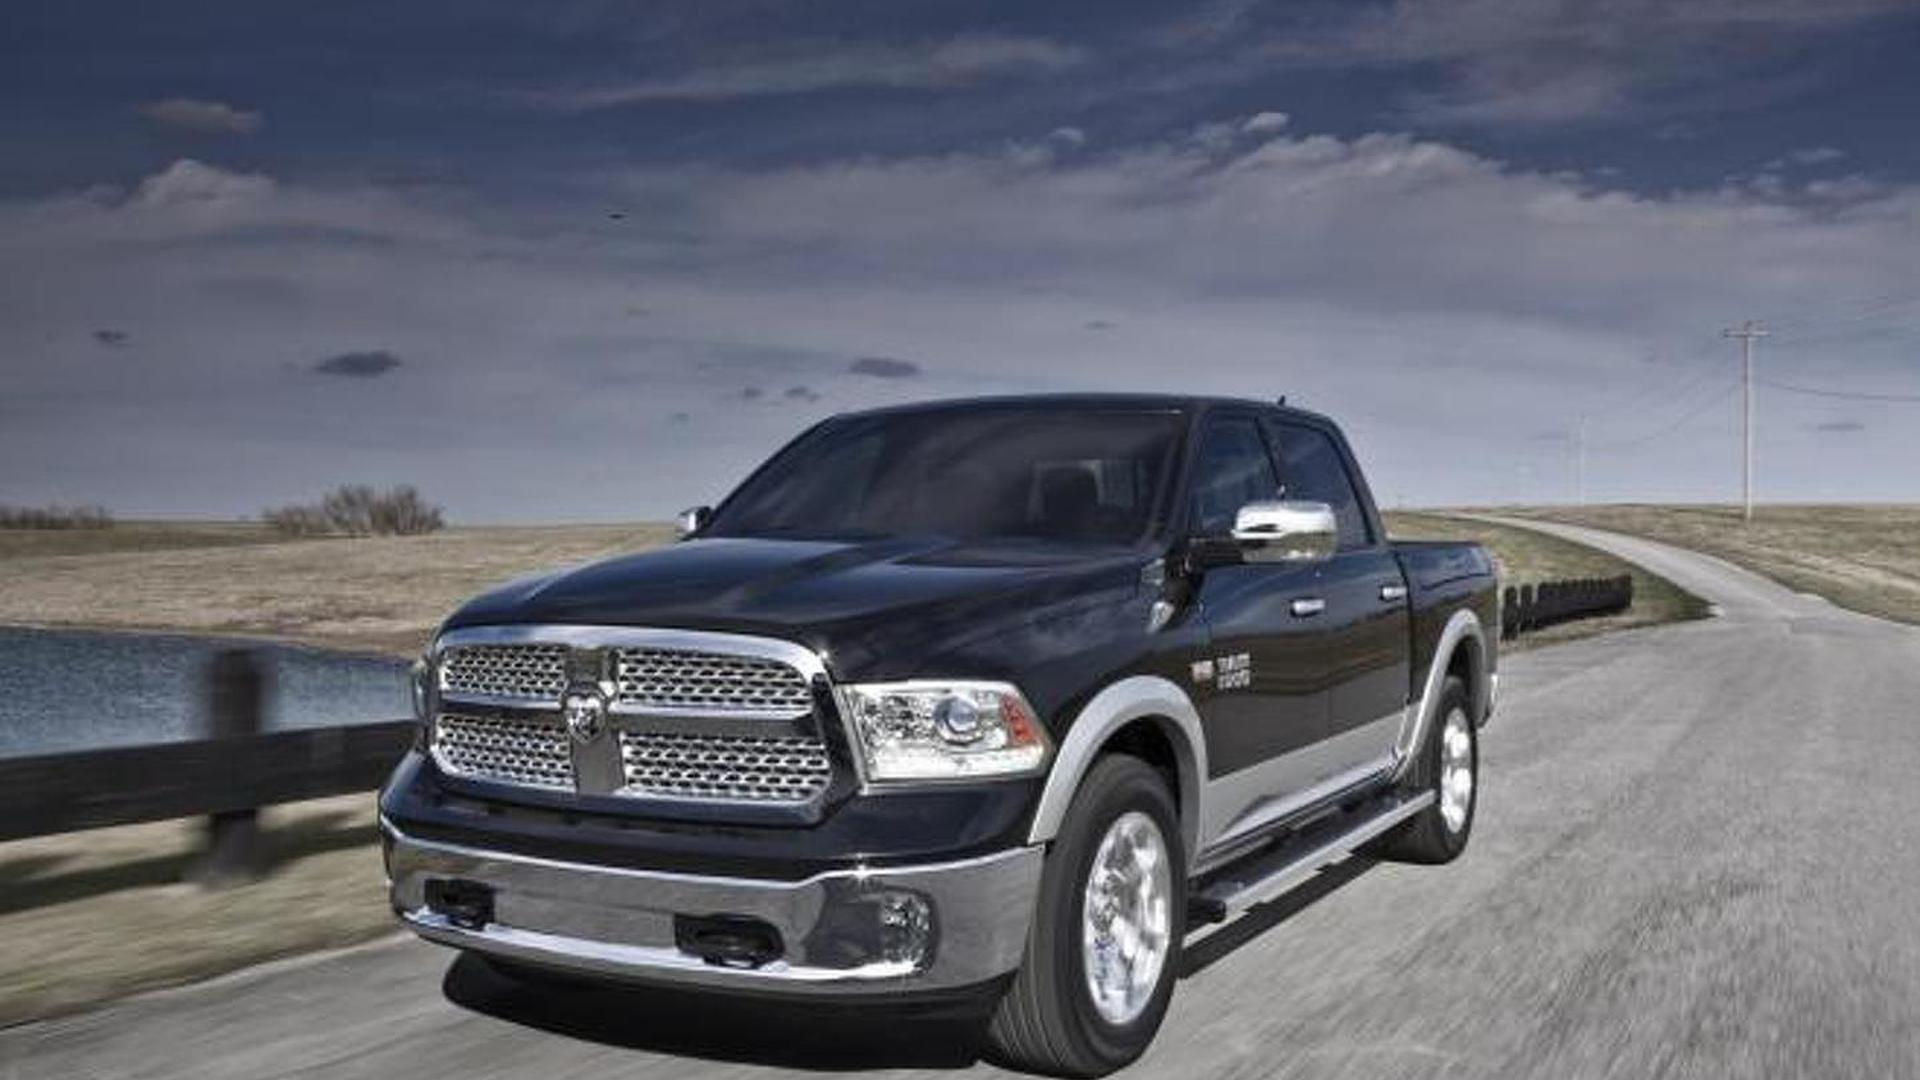 North American Car Of The Year And Truck of the Year winners announced